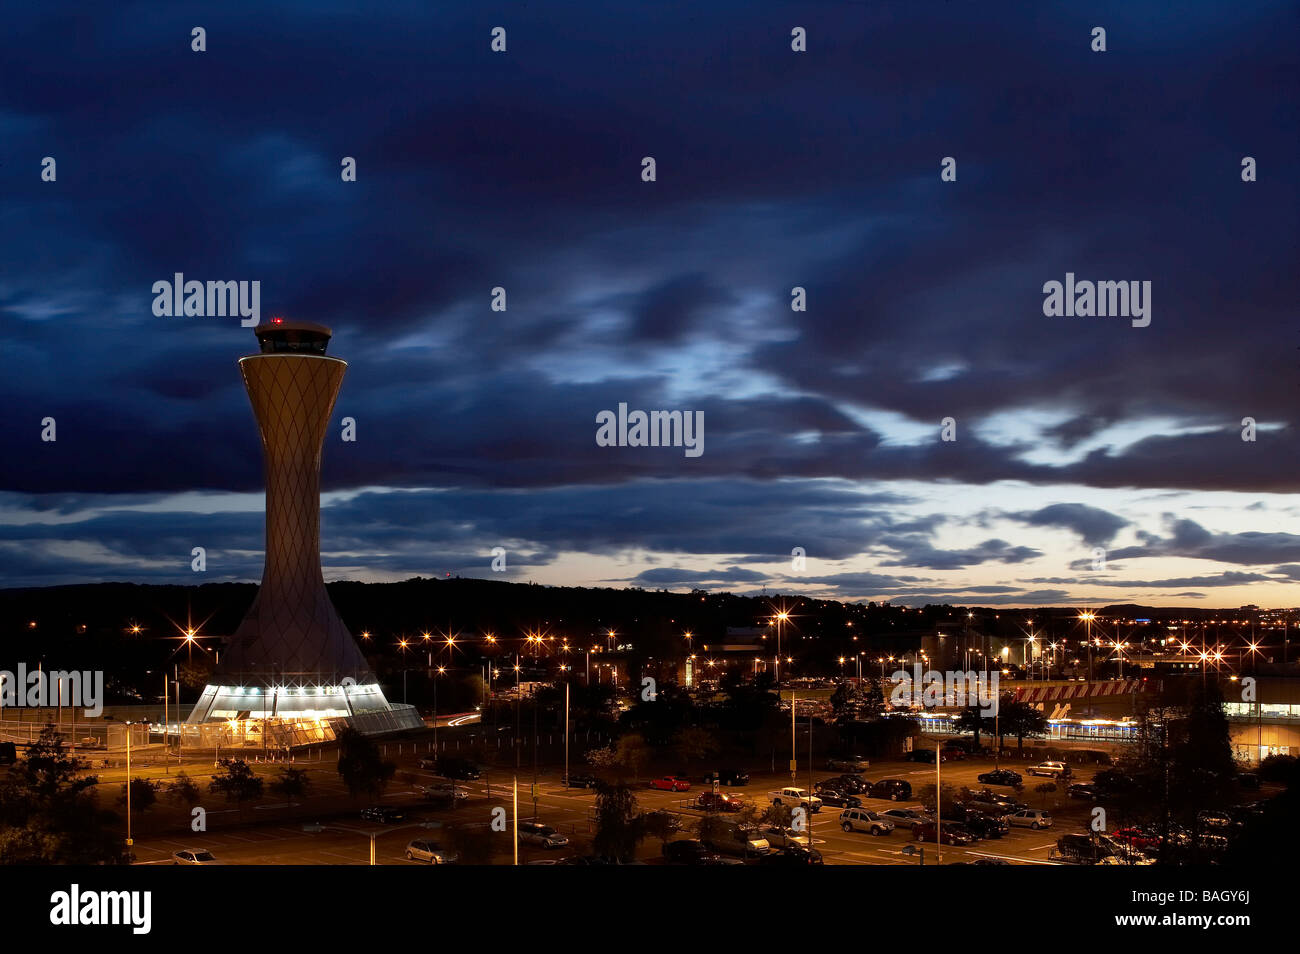 air traffic control tower twilight from car park - Stock Image